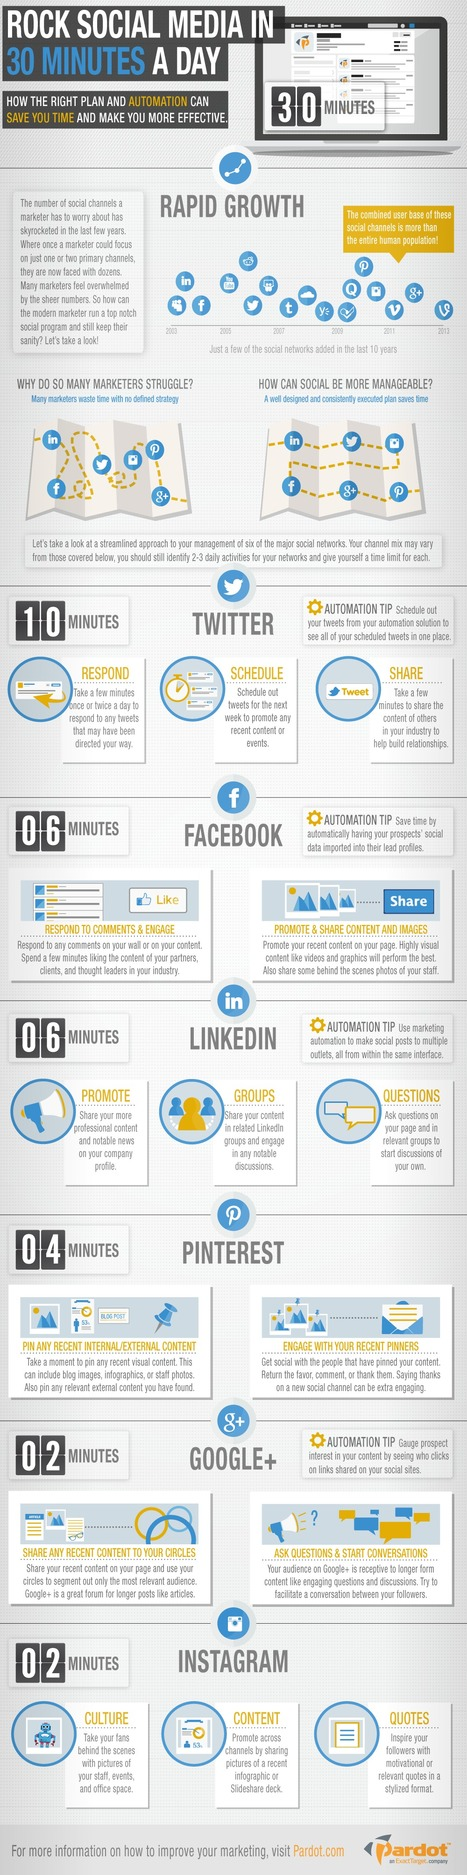 How To Rock Social Media In Just 30 Minutes A Day | B2B SEO and Internet Marketing | Scoop.it